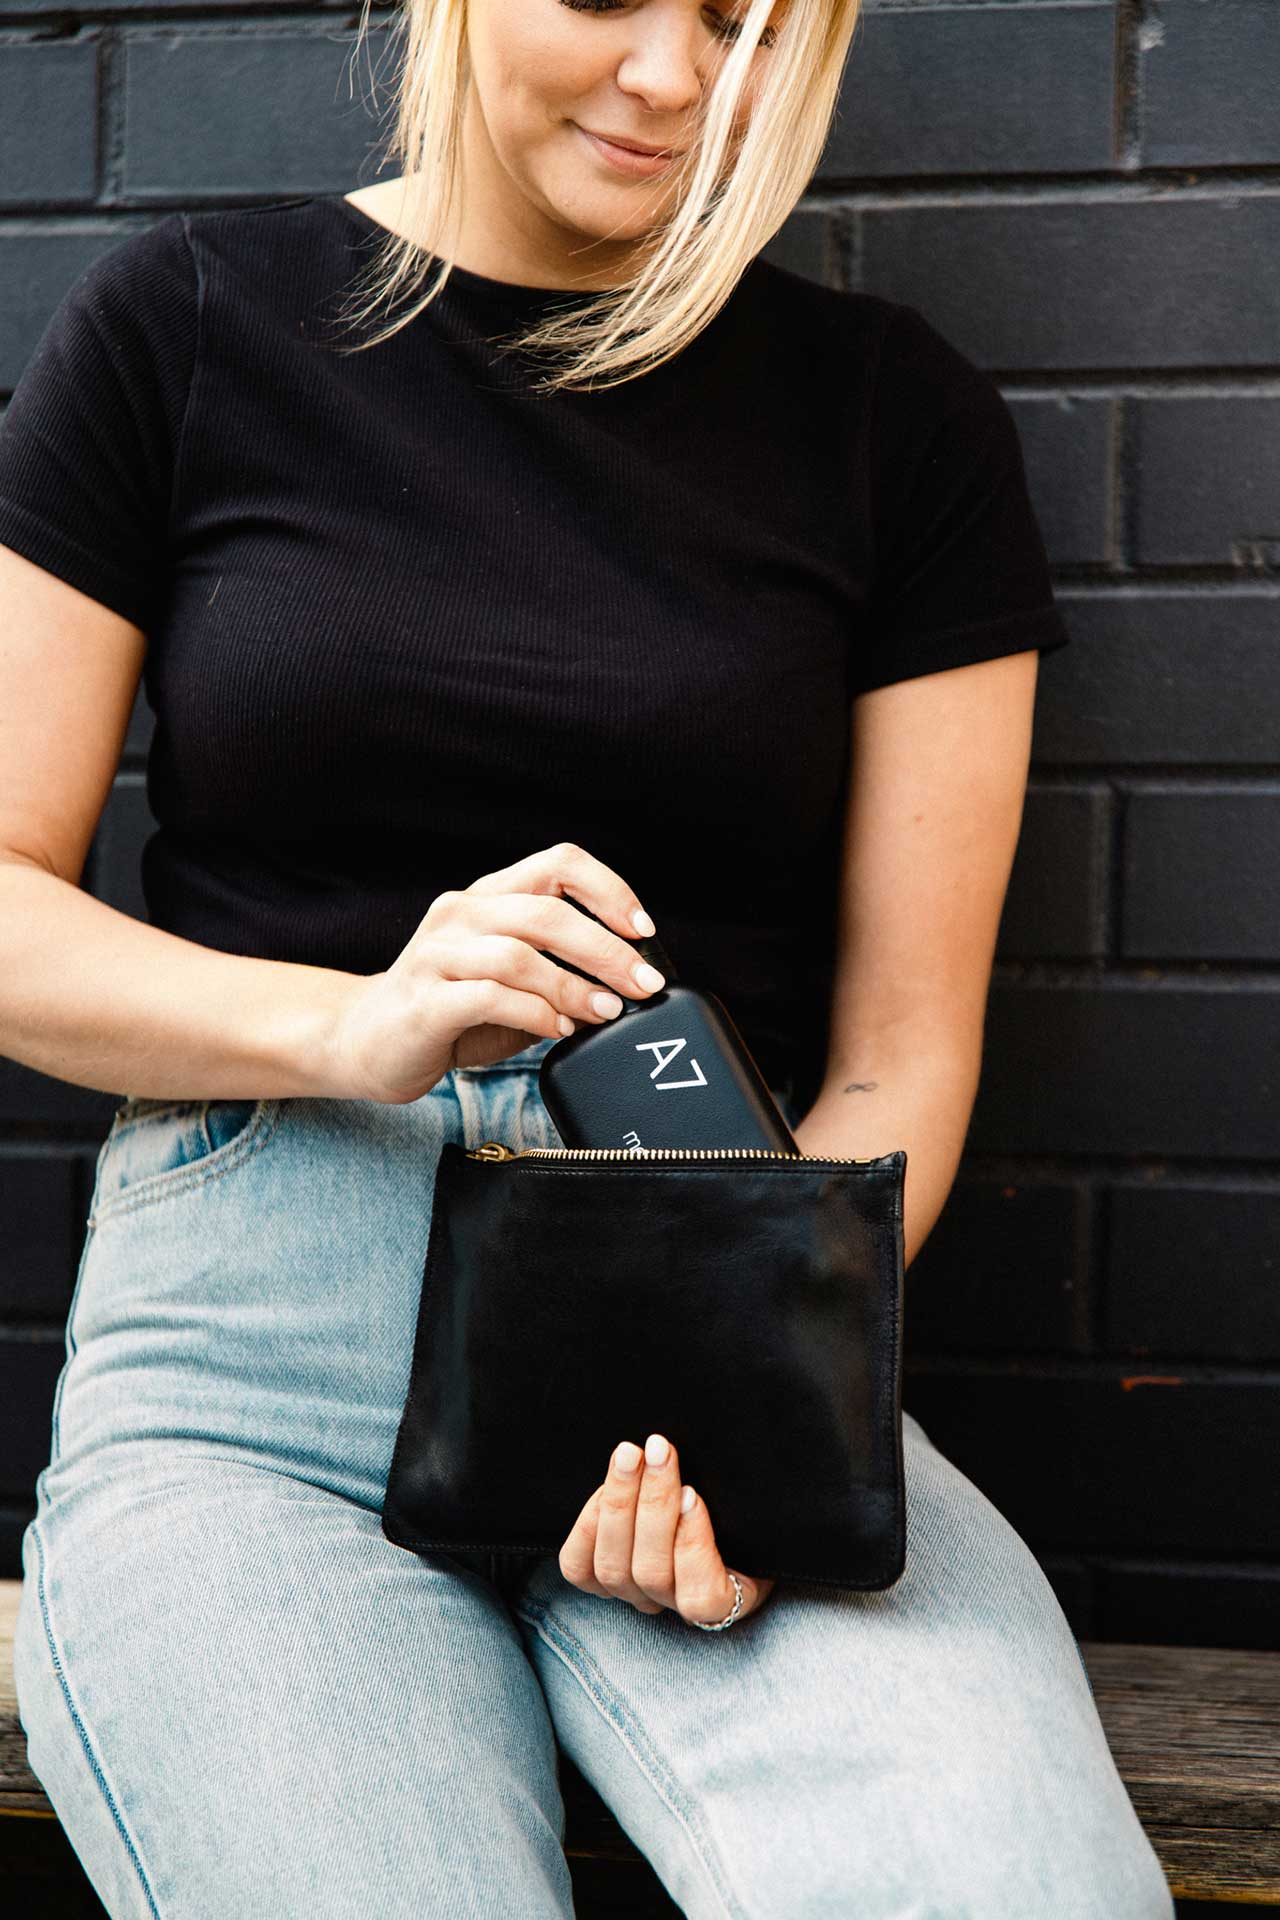 girl holding small flat black bottle with phone